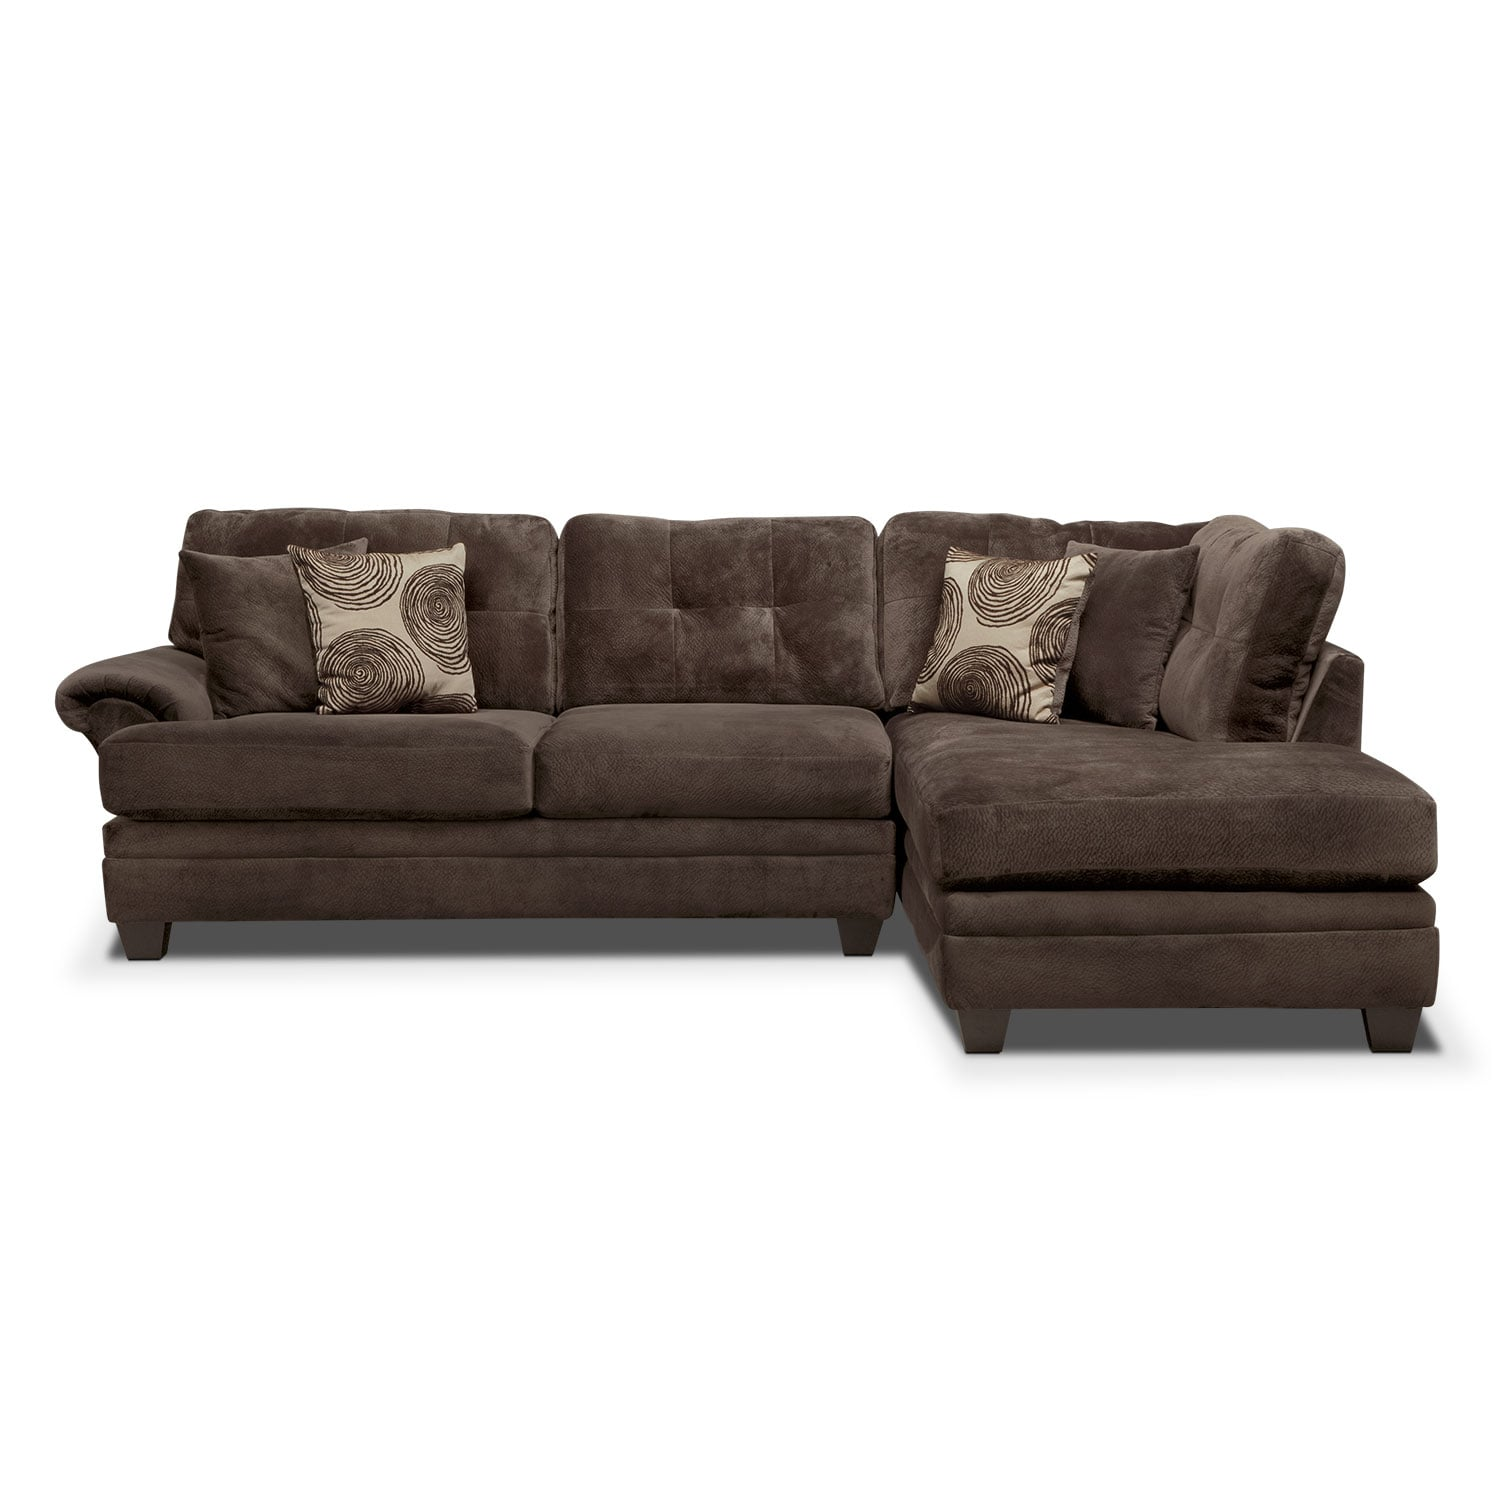 Cordelle 2 Piece Sectional With Right Facing Chaise